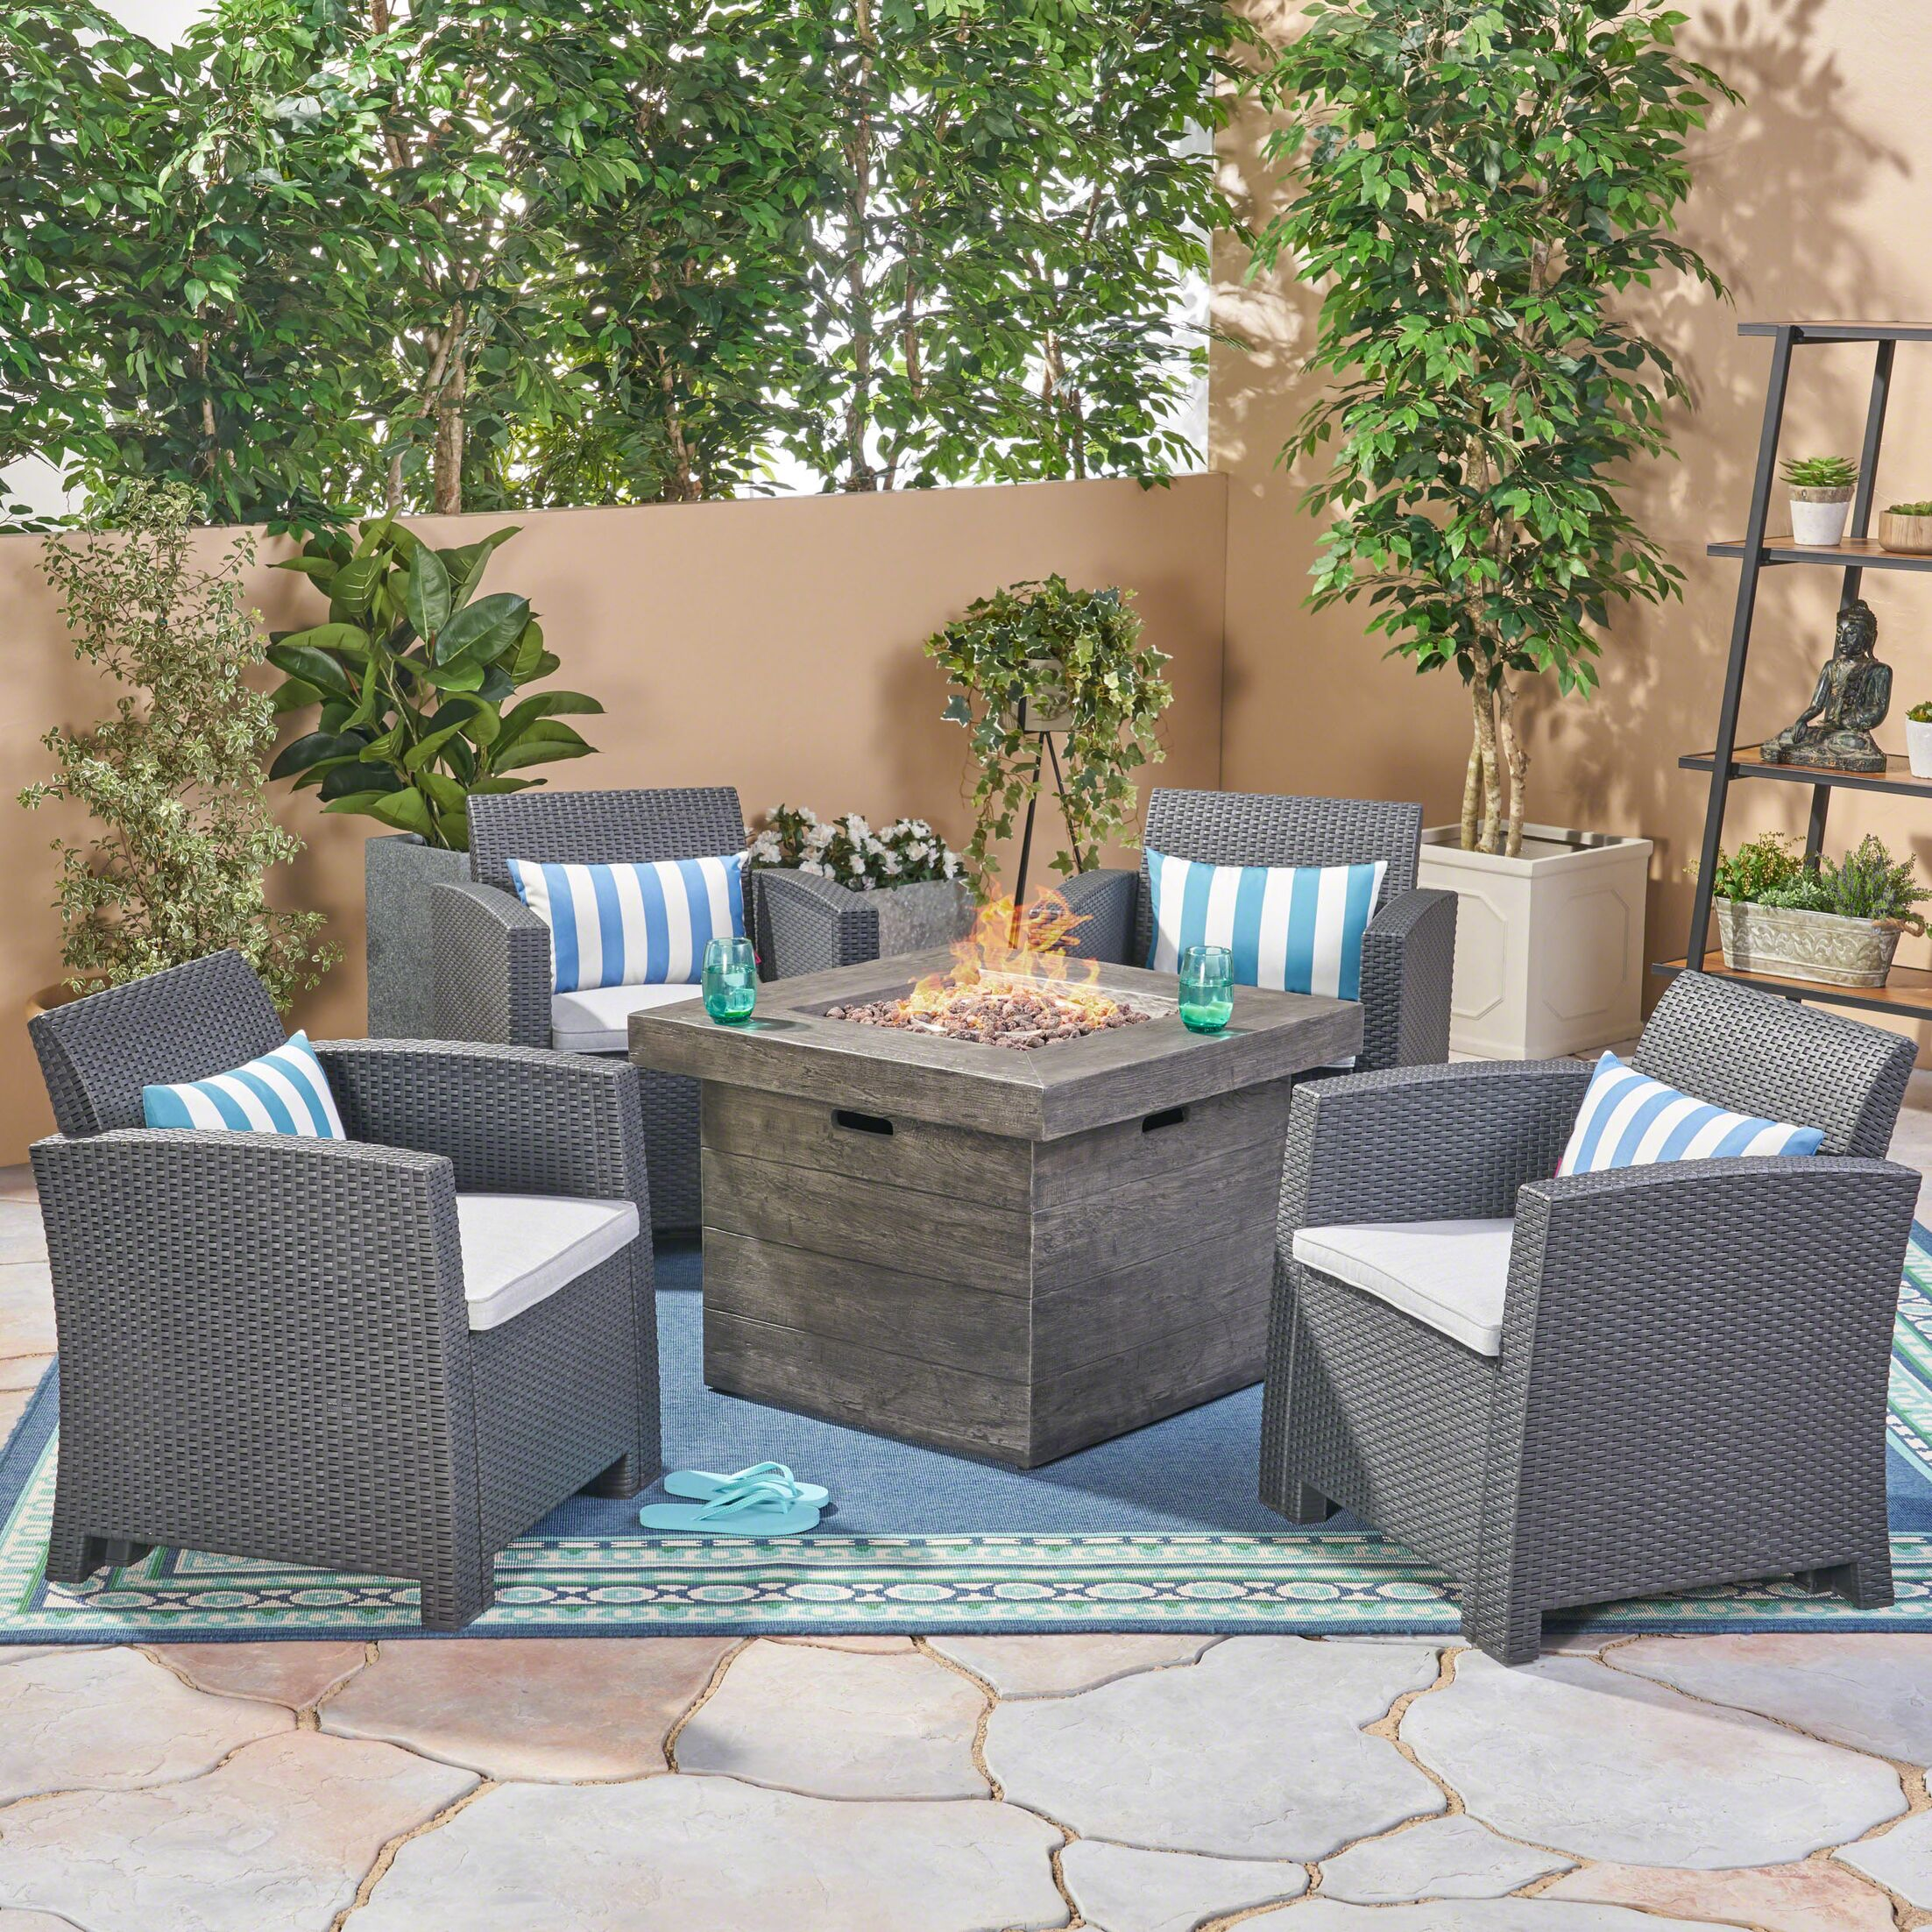 Helena Outdoor 5 Piece Rattan Sofa Seating Group with Cushions Frame Finish: Charcoal, Cushion Color: Light Gray